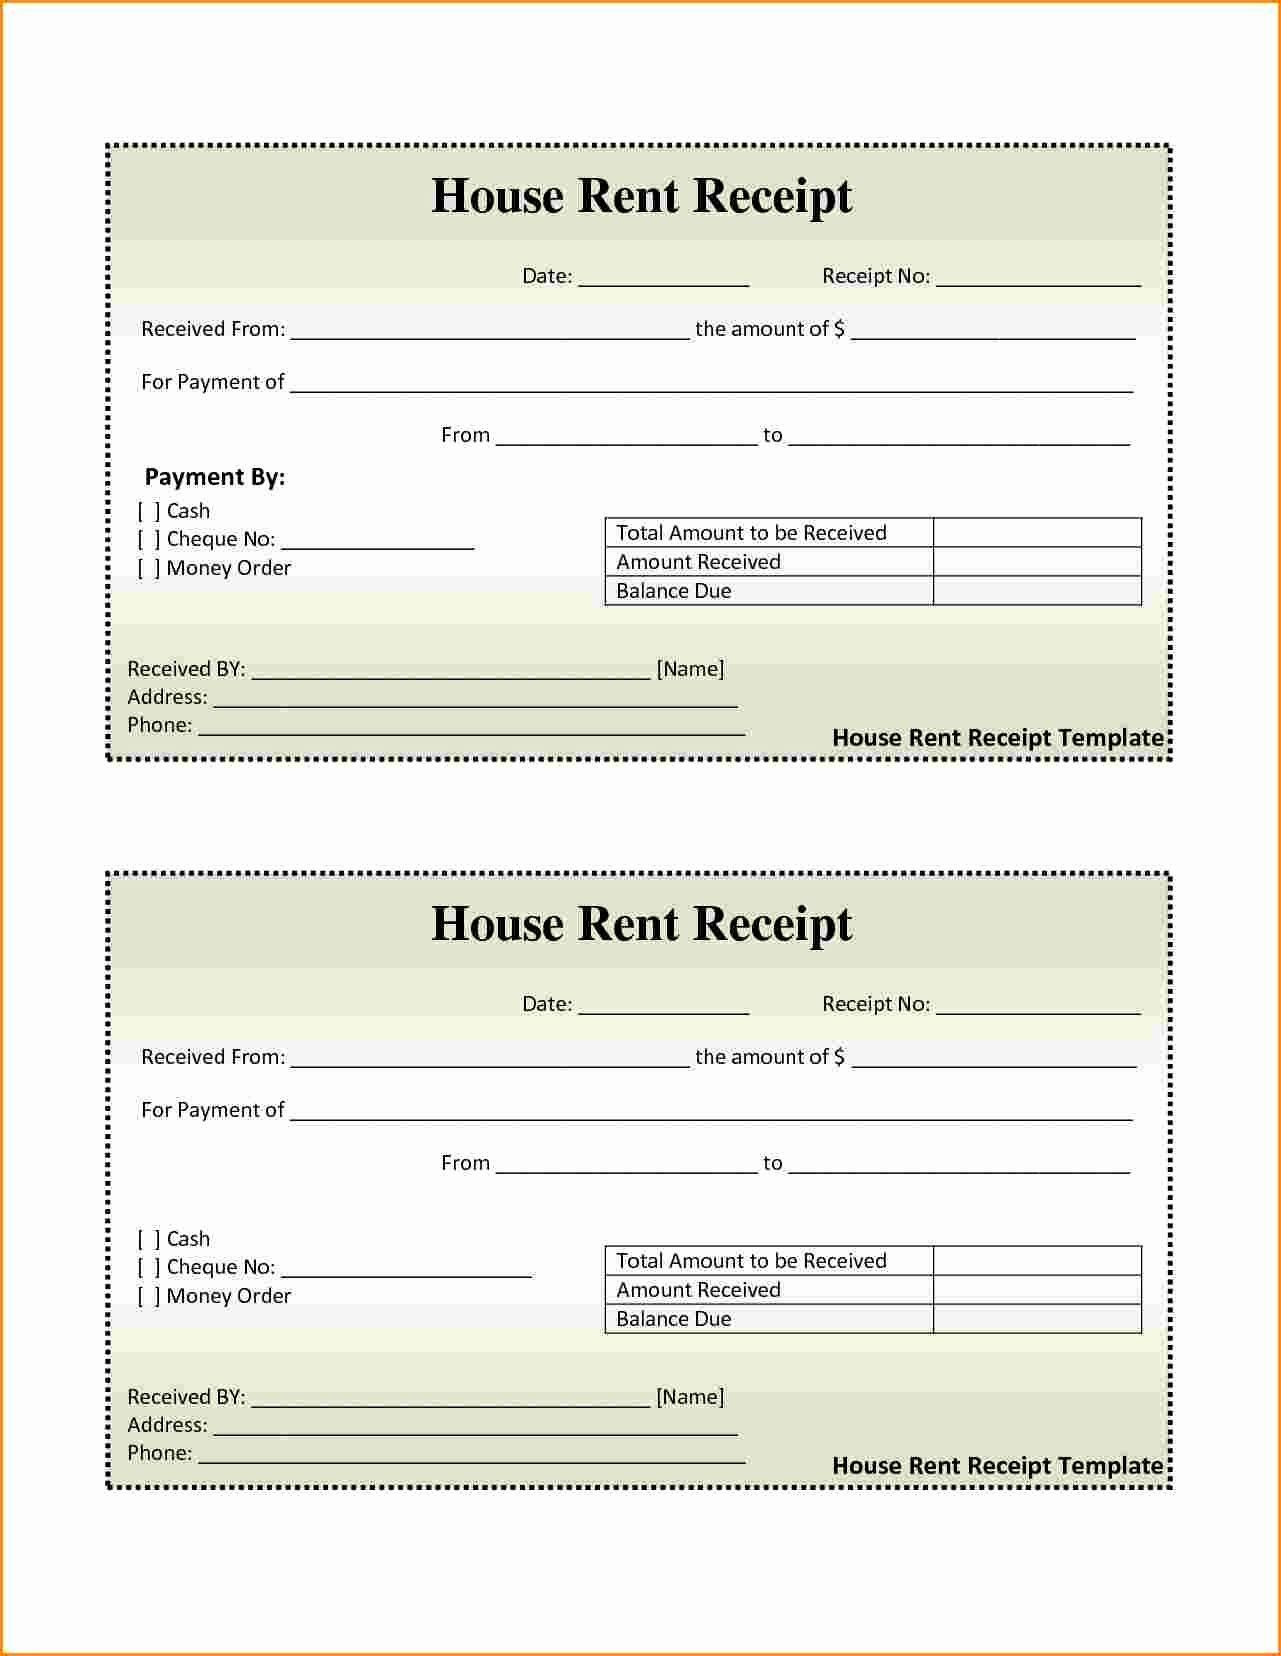 001 Awesome House Rent Receipt Sample Doc Idea  Template India Bill Format Word Document Pdf DownloadFull